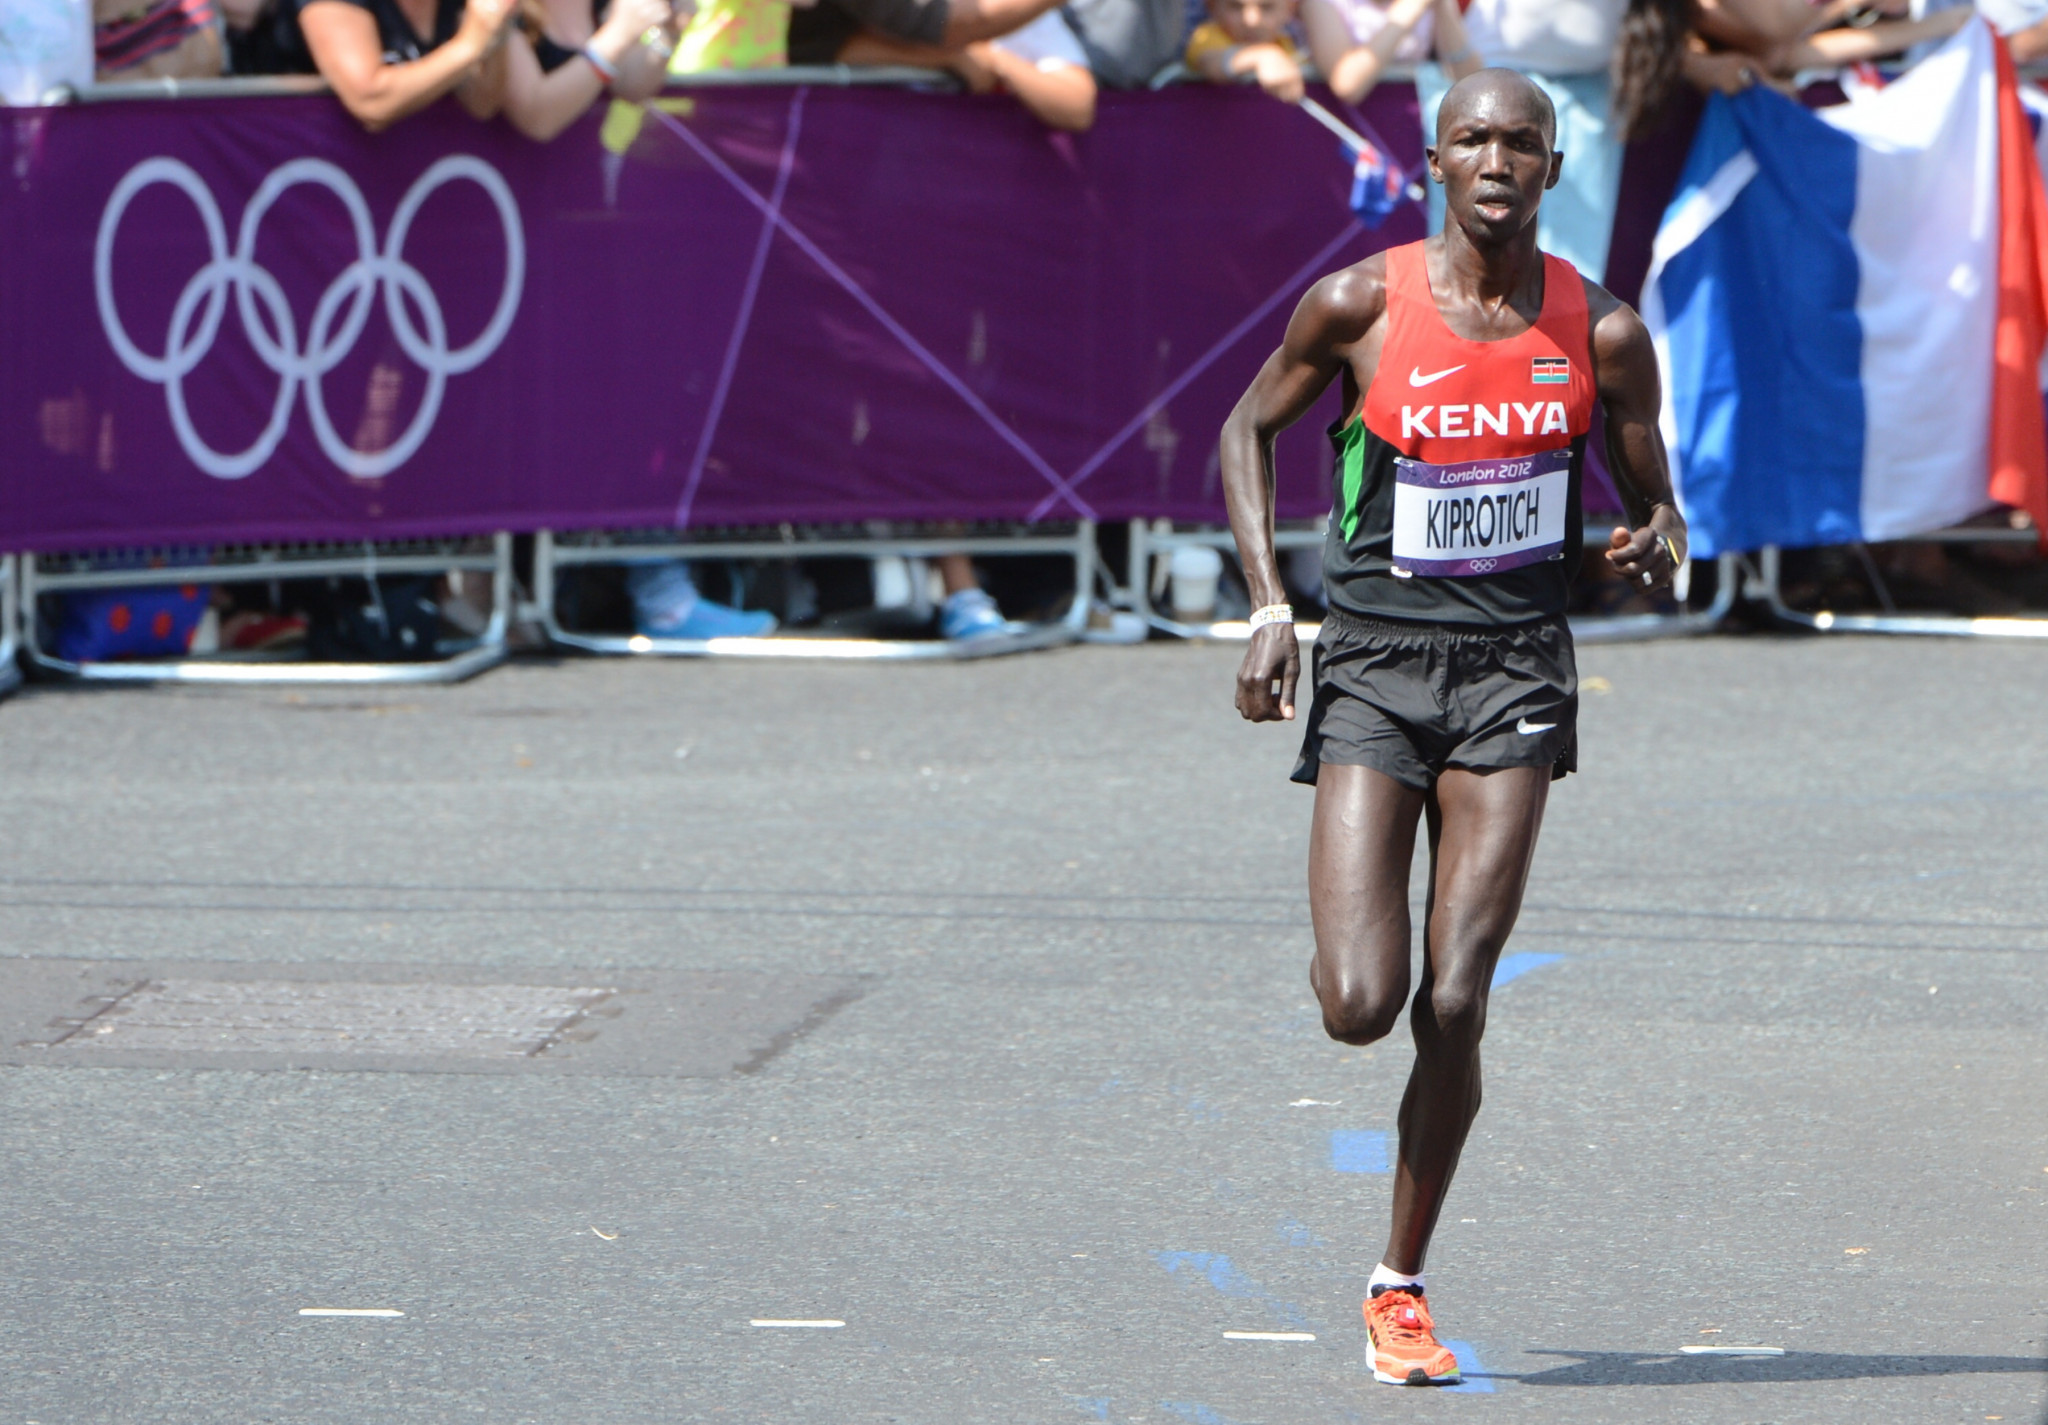 Wilson Kipsang earned a bronze medal at the London 2012 Olympic Games ©Getty Images